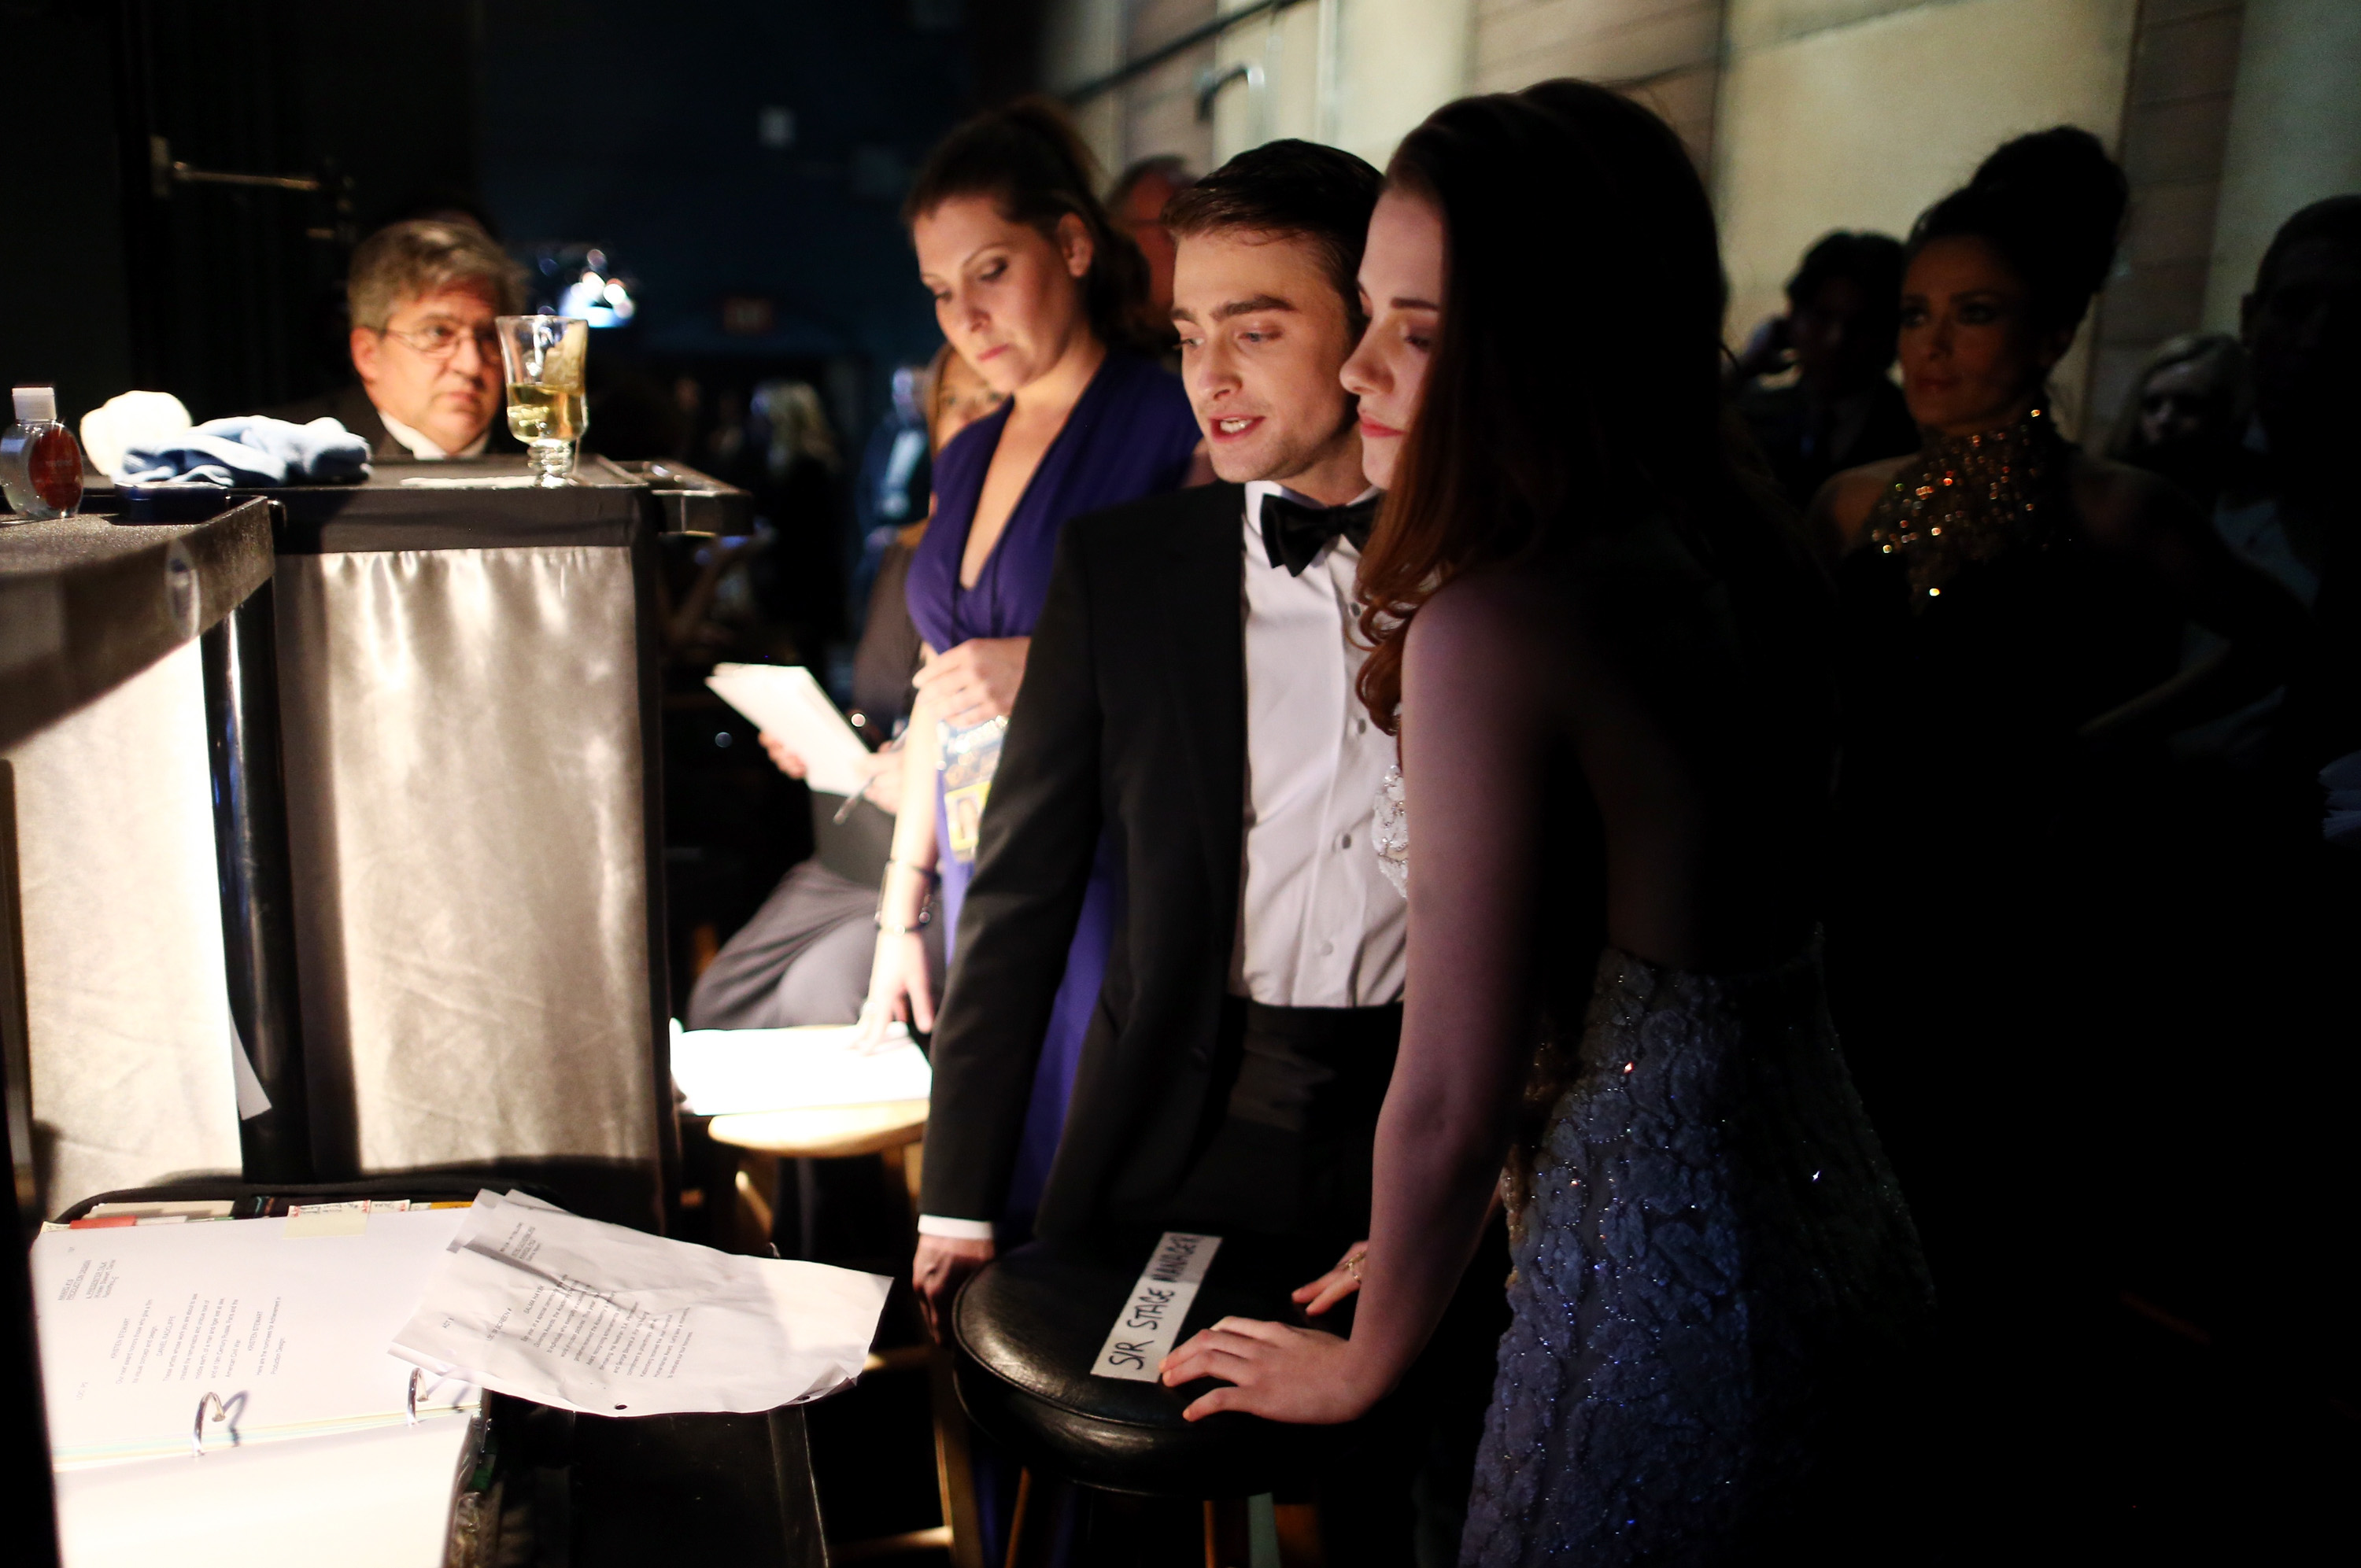 Daniel Radcliffe and Kristen Stewart backstage at the 2013 Oscars.